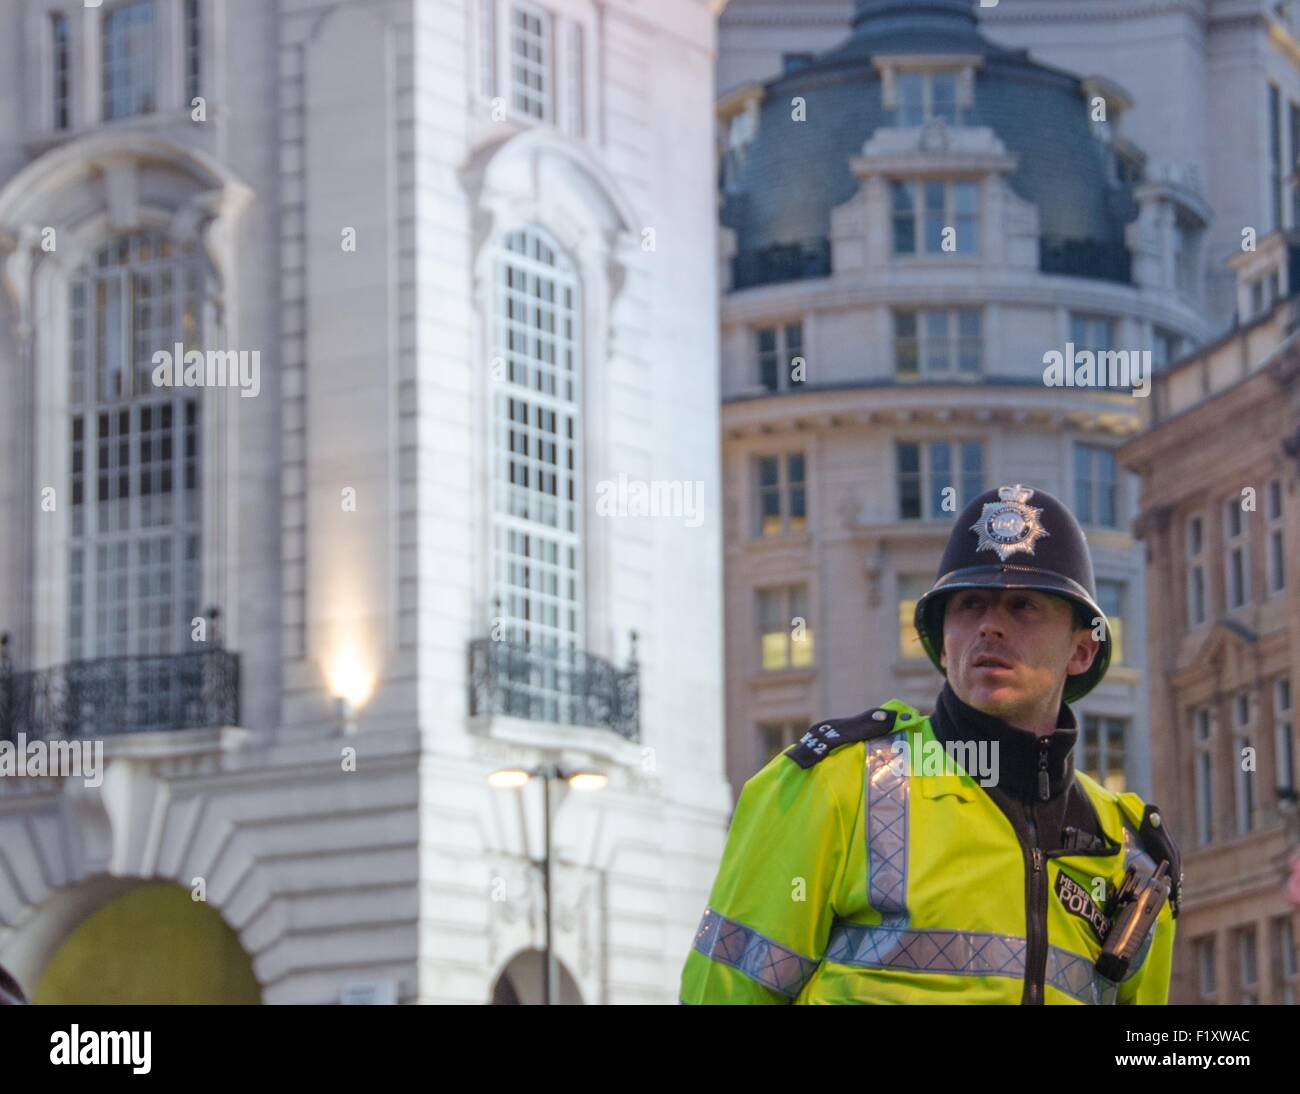 A Metropolitan Police officer surveying the crowds at Piccadilly Circus, London, UK - Stock Image